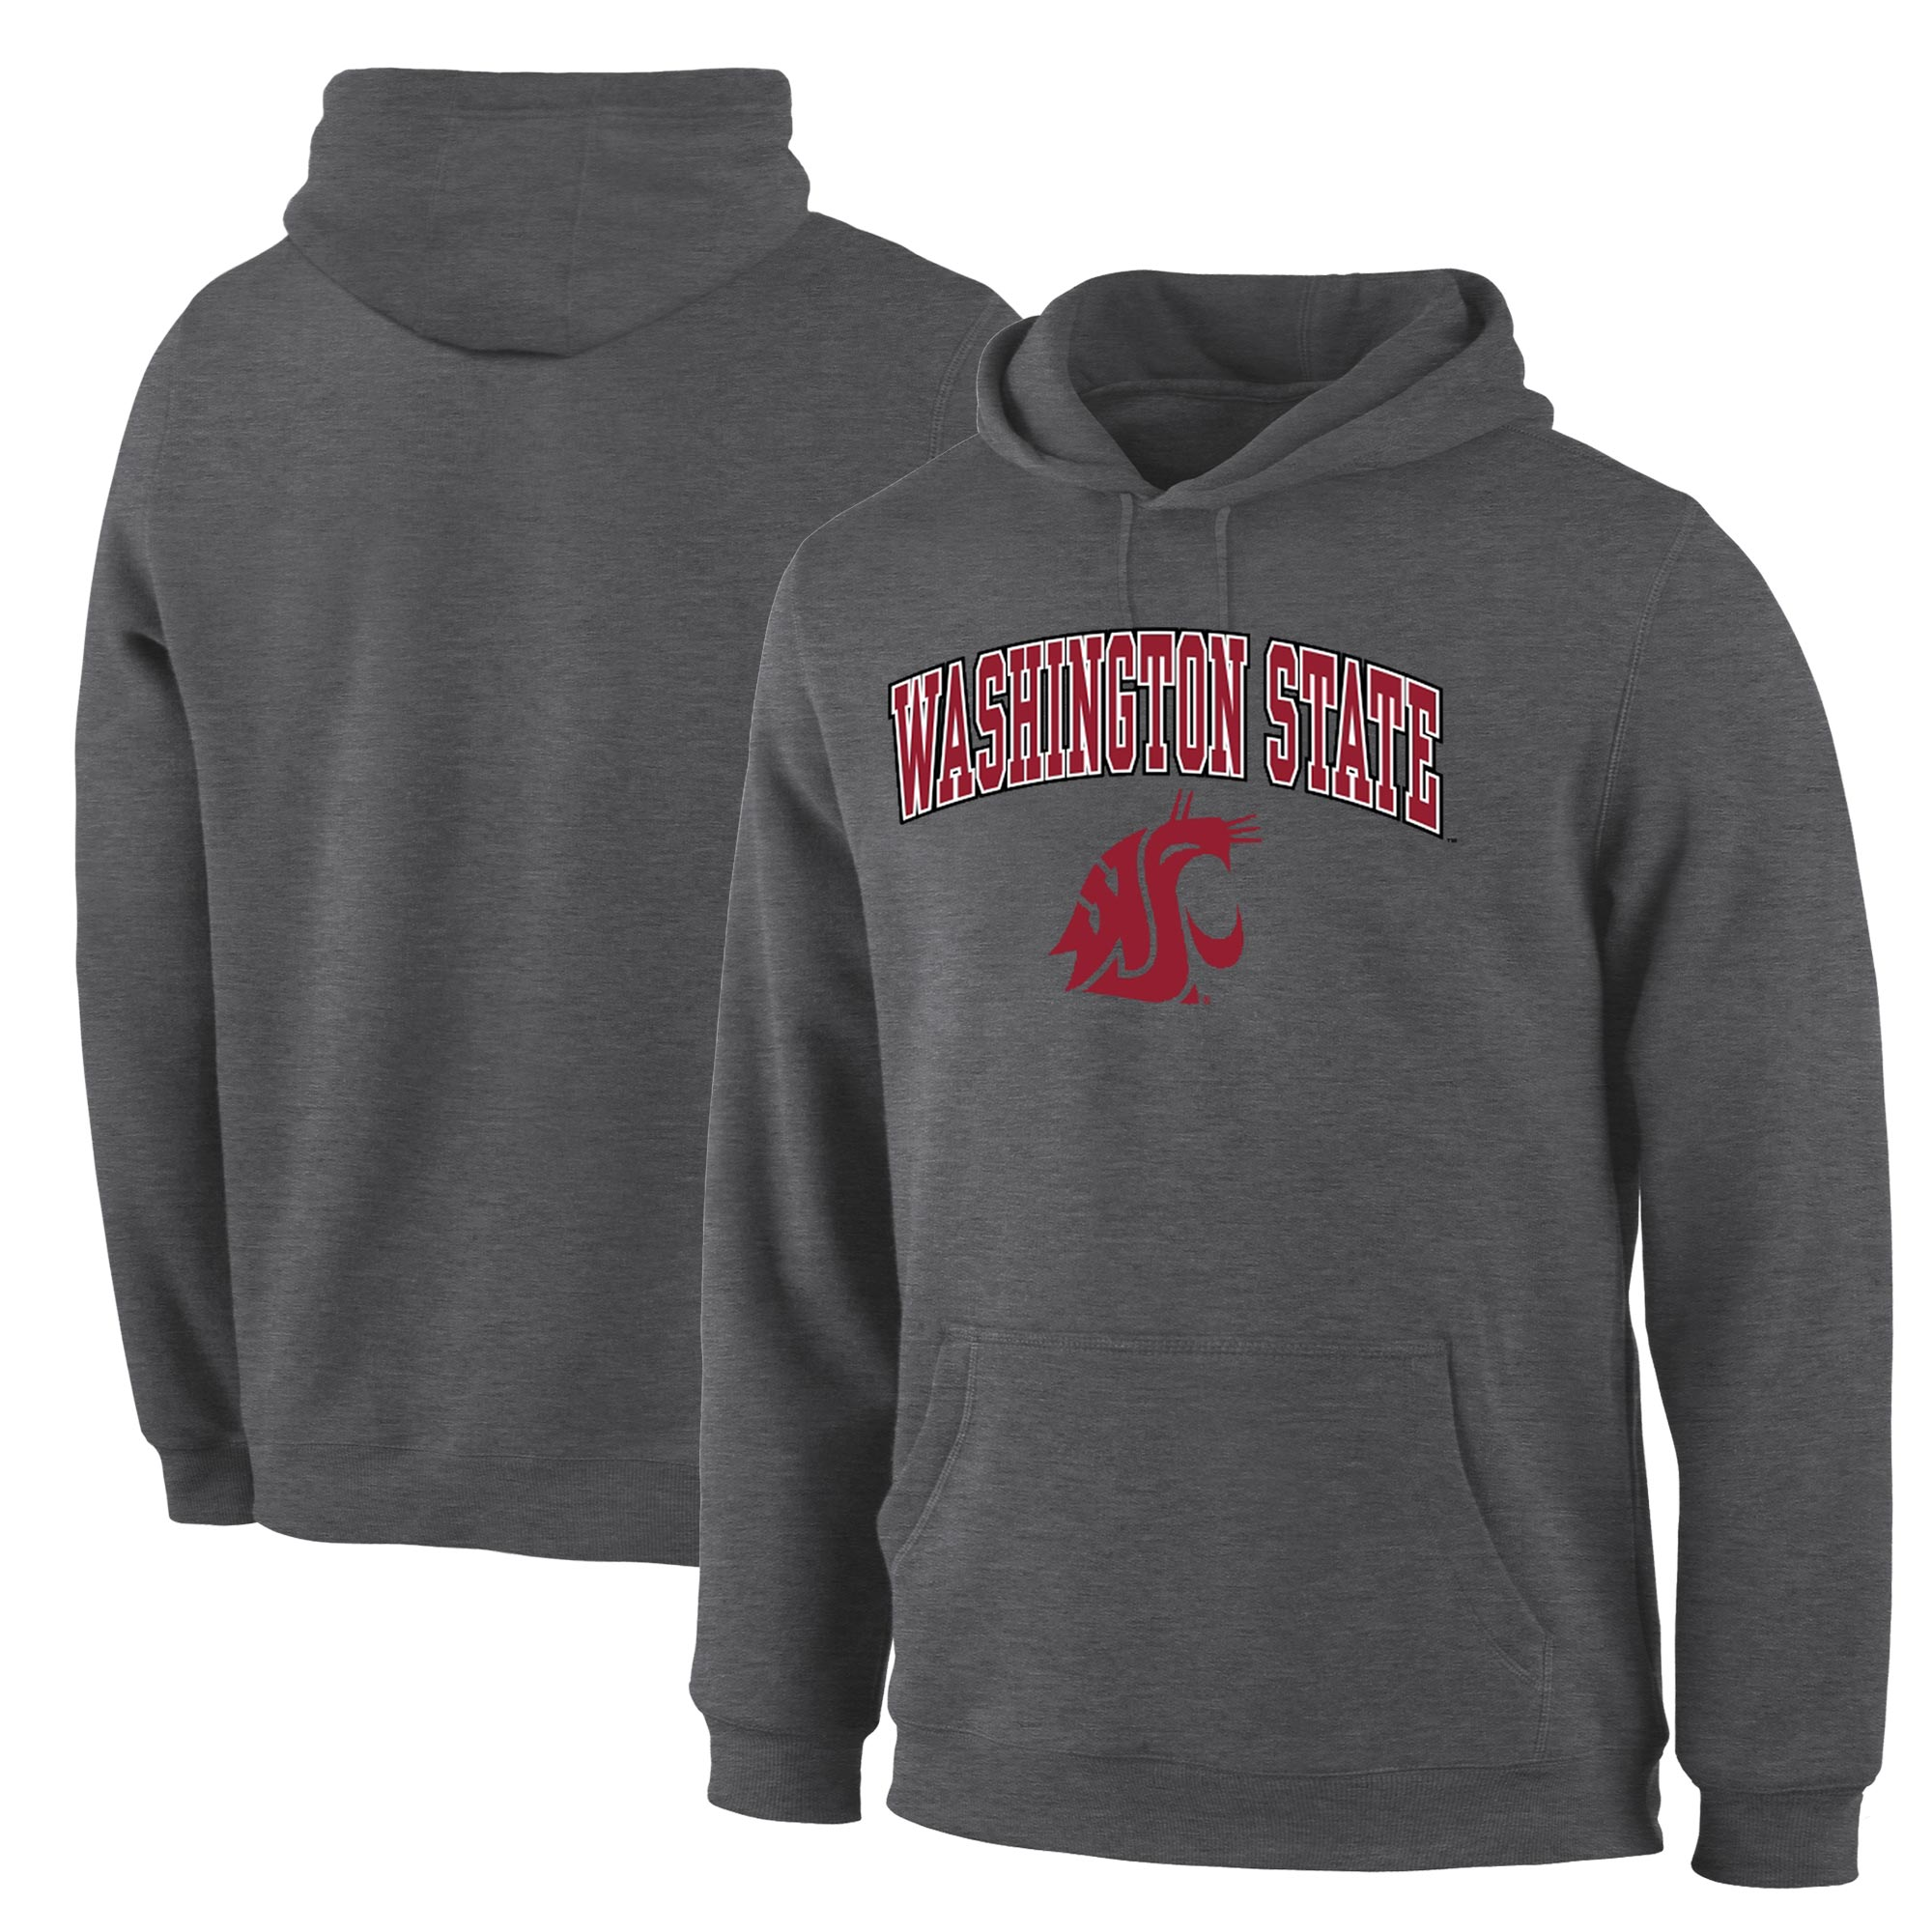 Washington State Cougars Charcoal Campus Pullover Hoodie